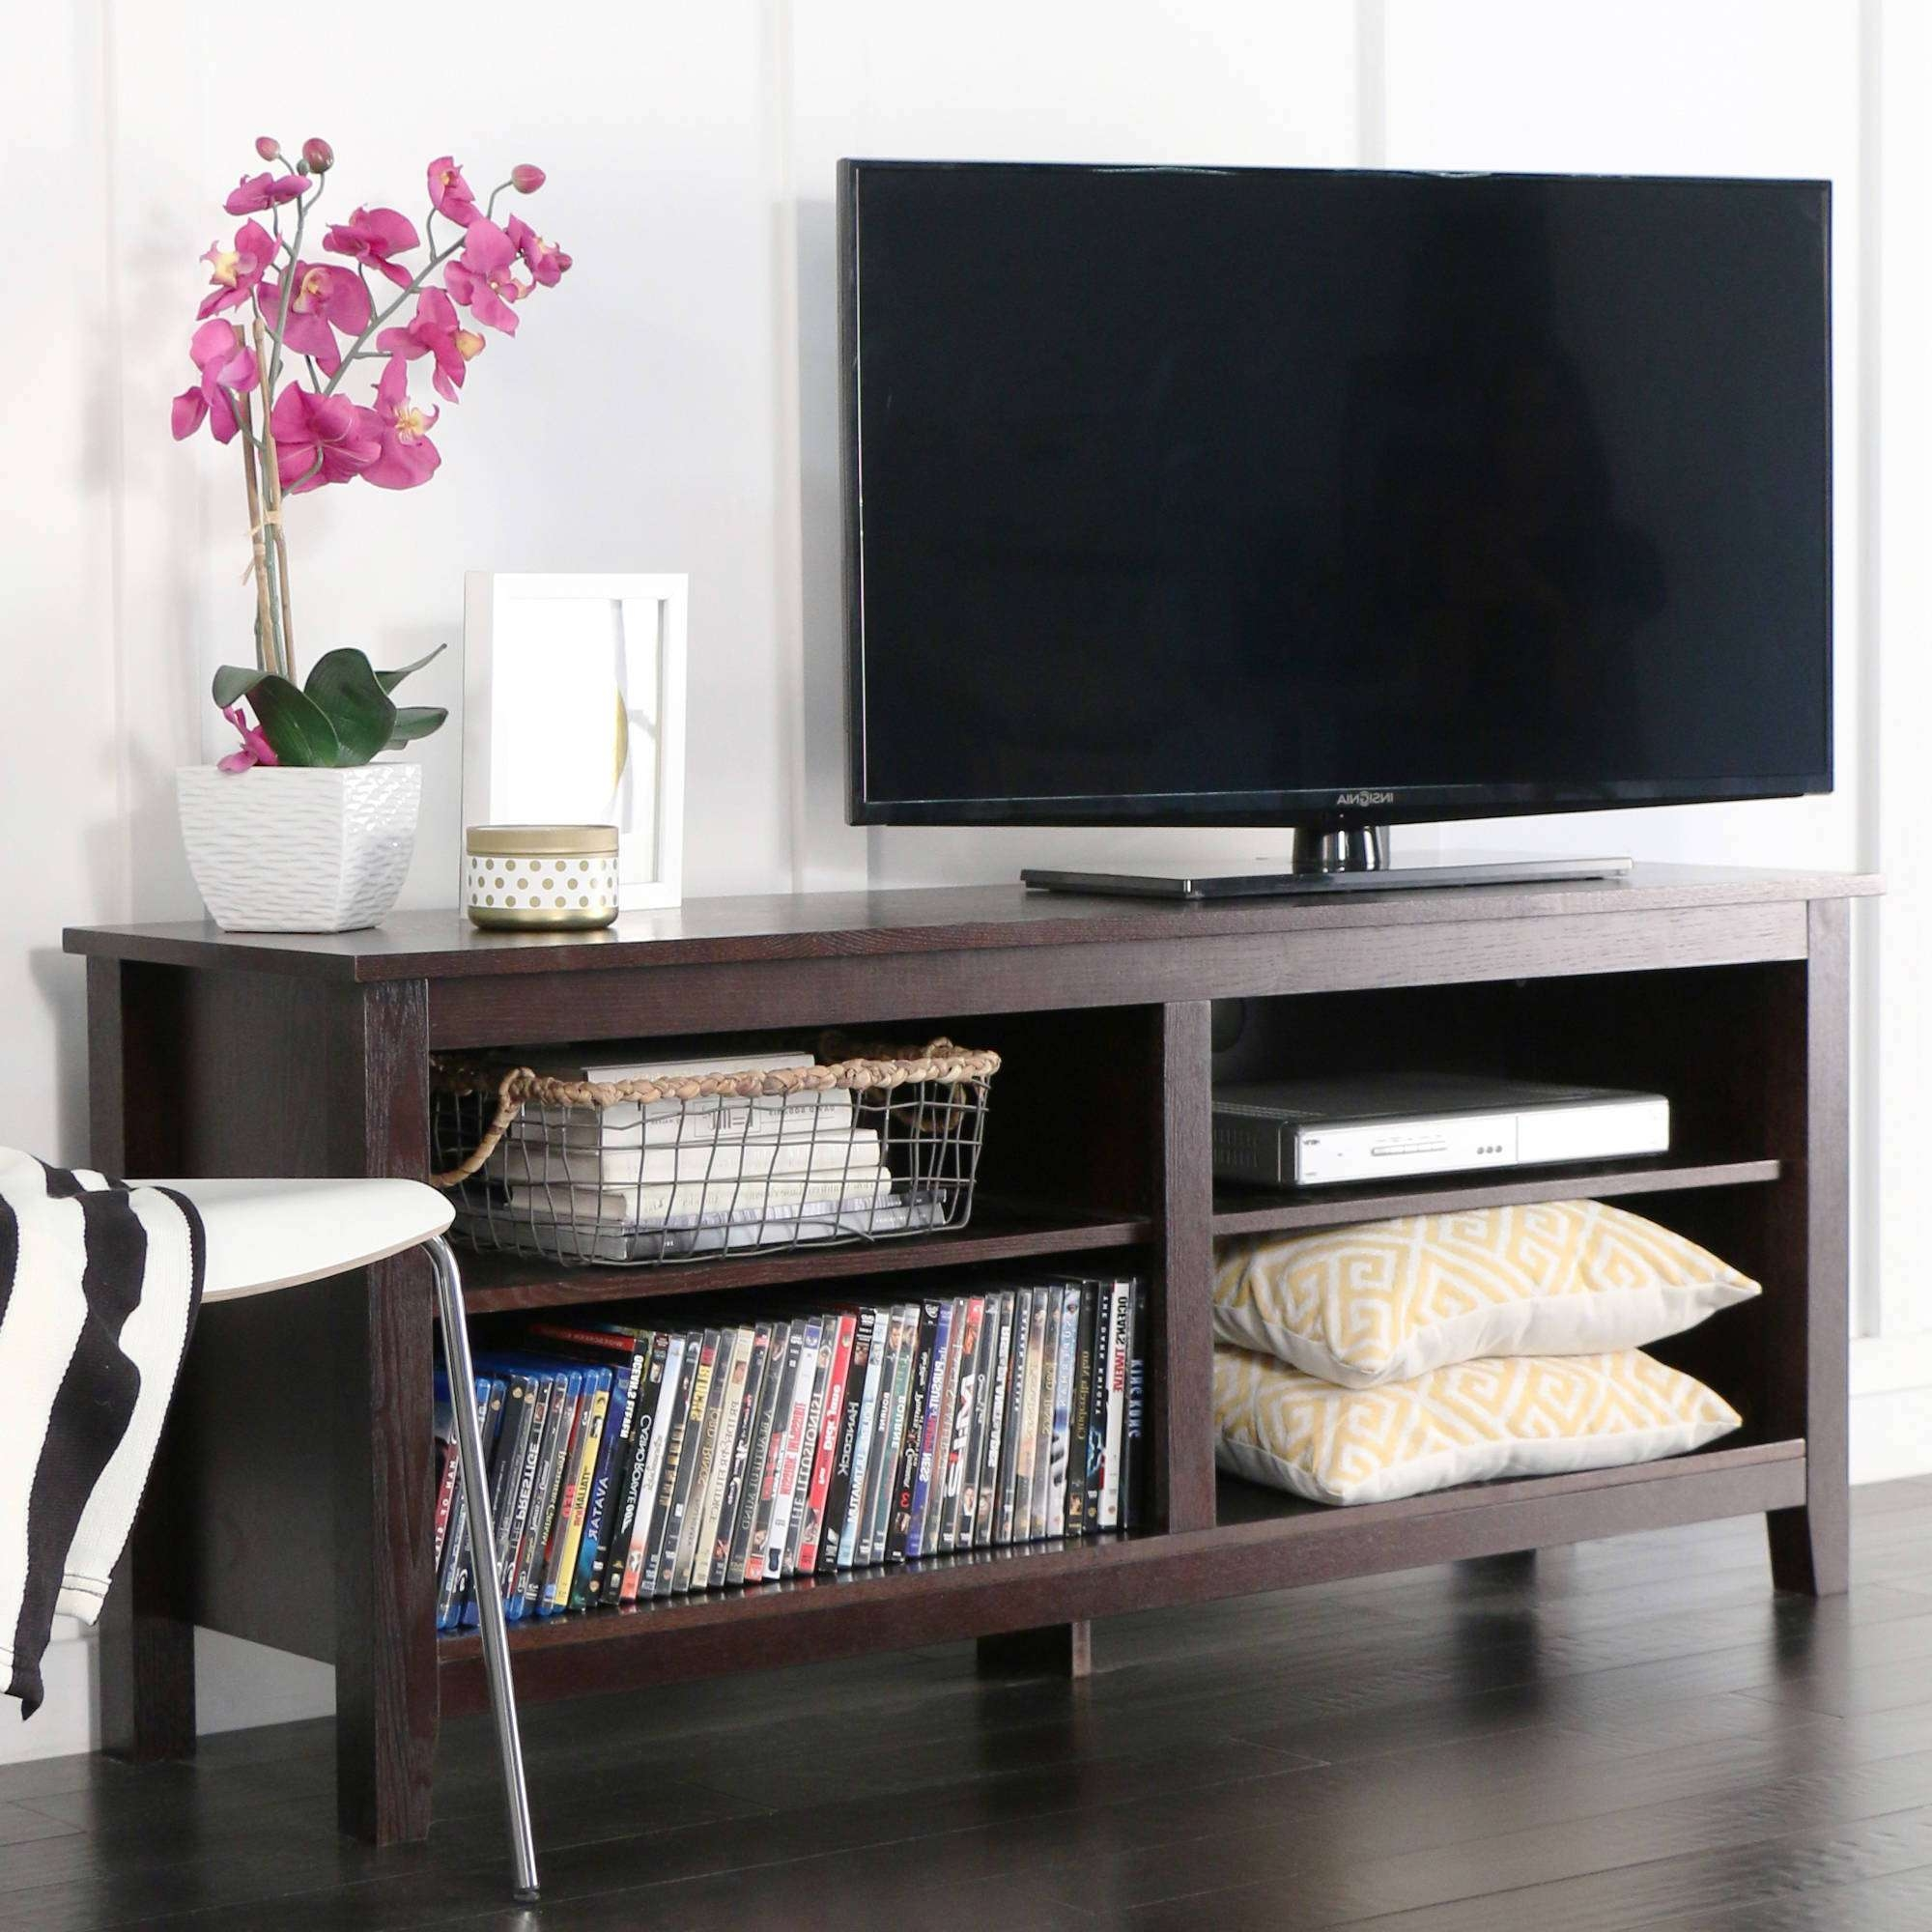 Tv : Stand Alone Tv Stands Exotic Stand Alone Tv Stands Within Stand Alone Tv Stands (View 9 of 20)